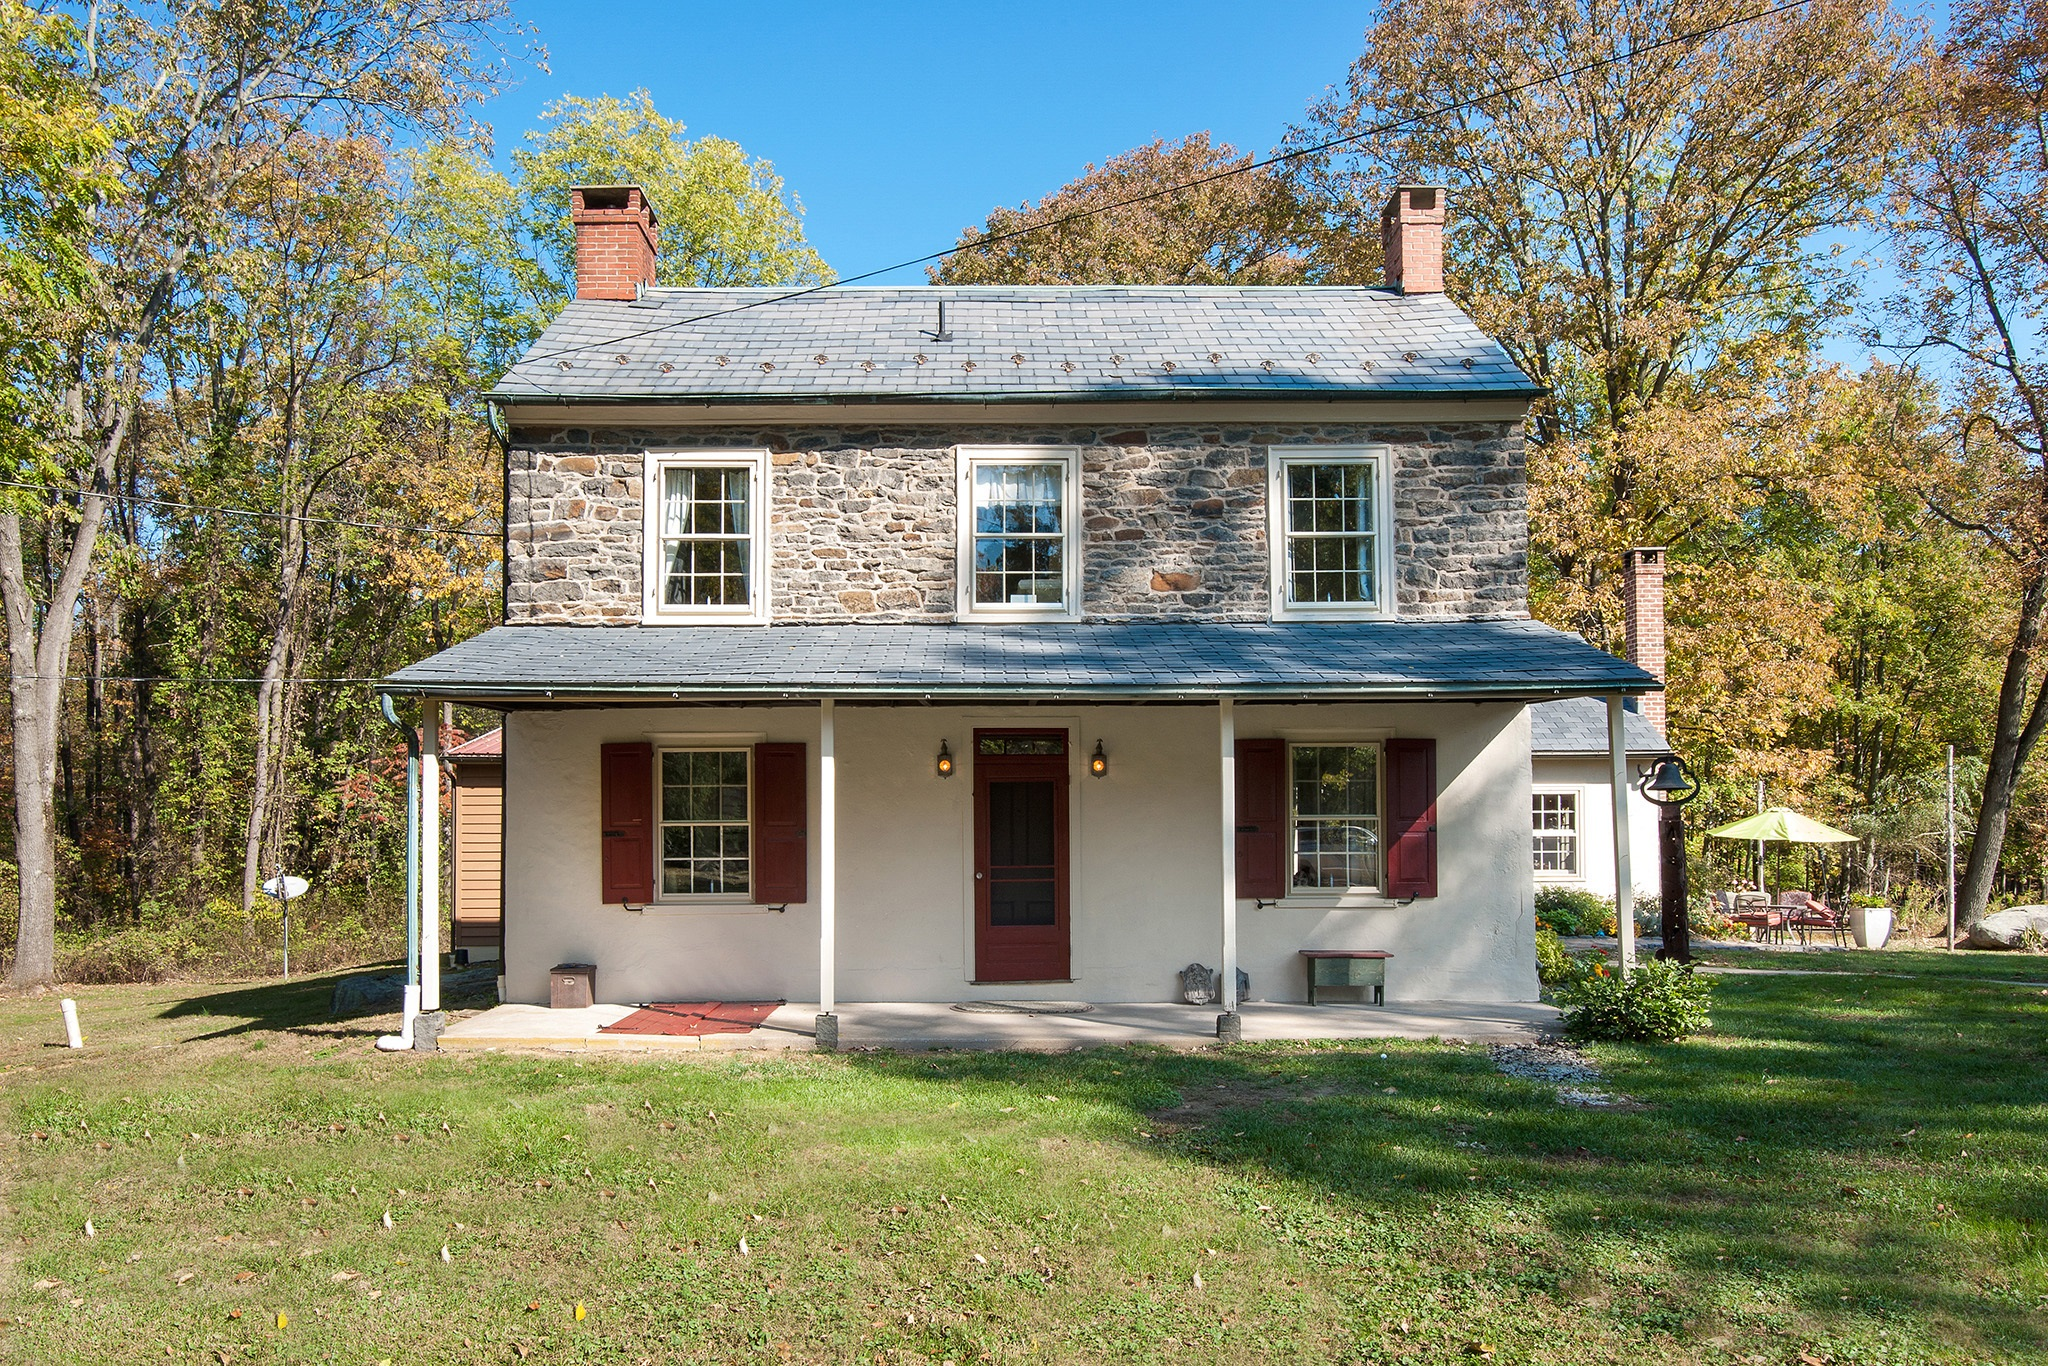 Fern rock bucks county stone farm house for sale in for Pennsylvania stone farmhouses